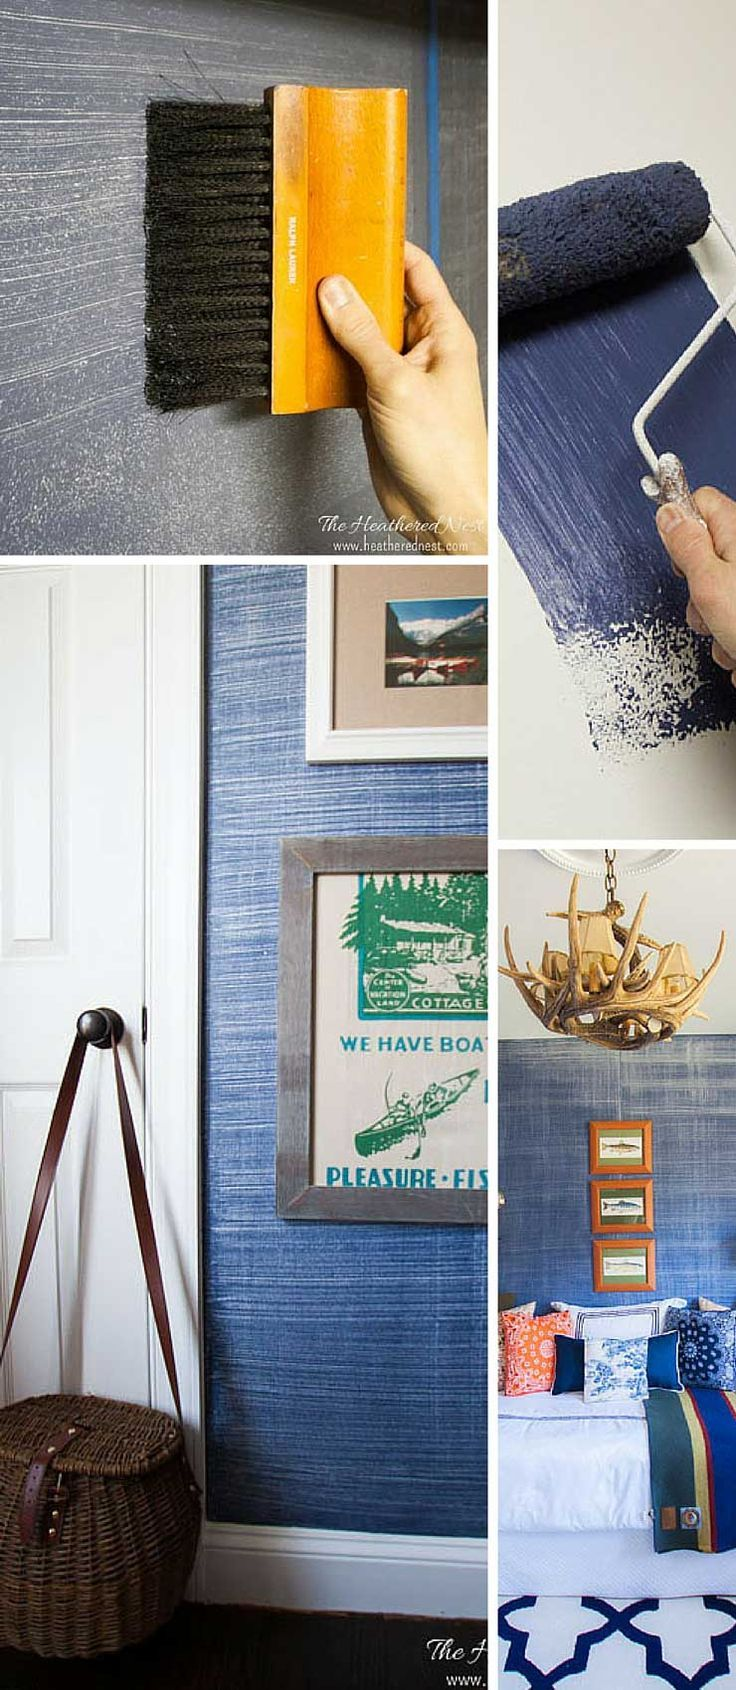 Best 25 Paint ideas ideas on Pinterest